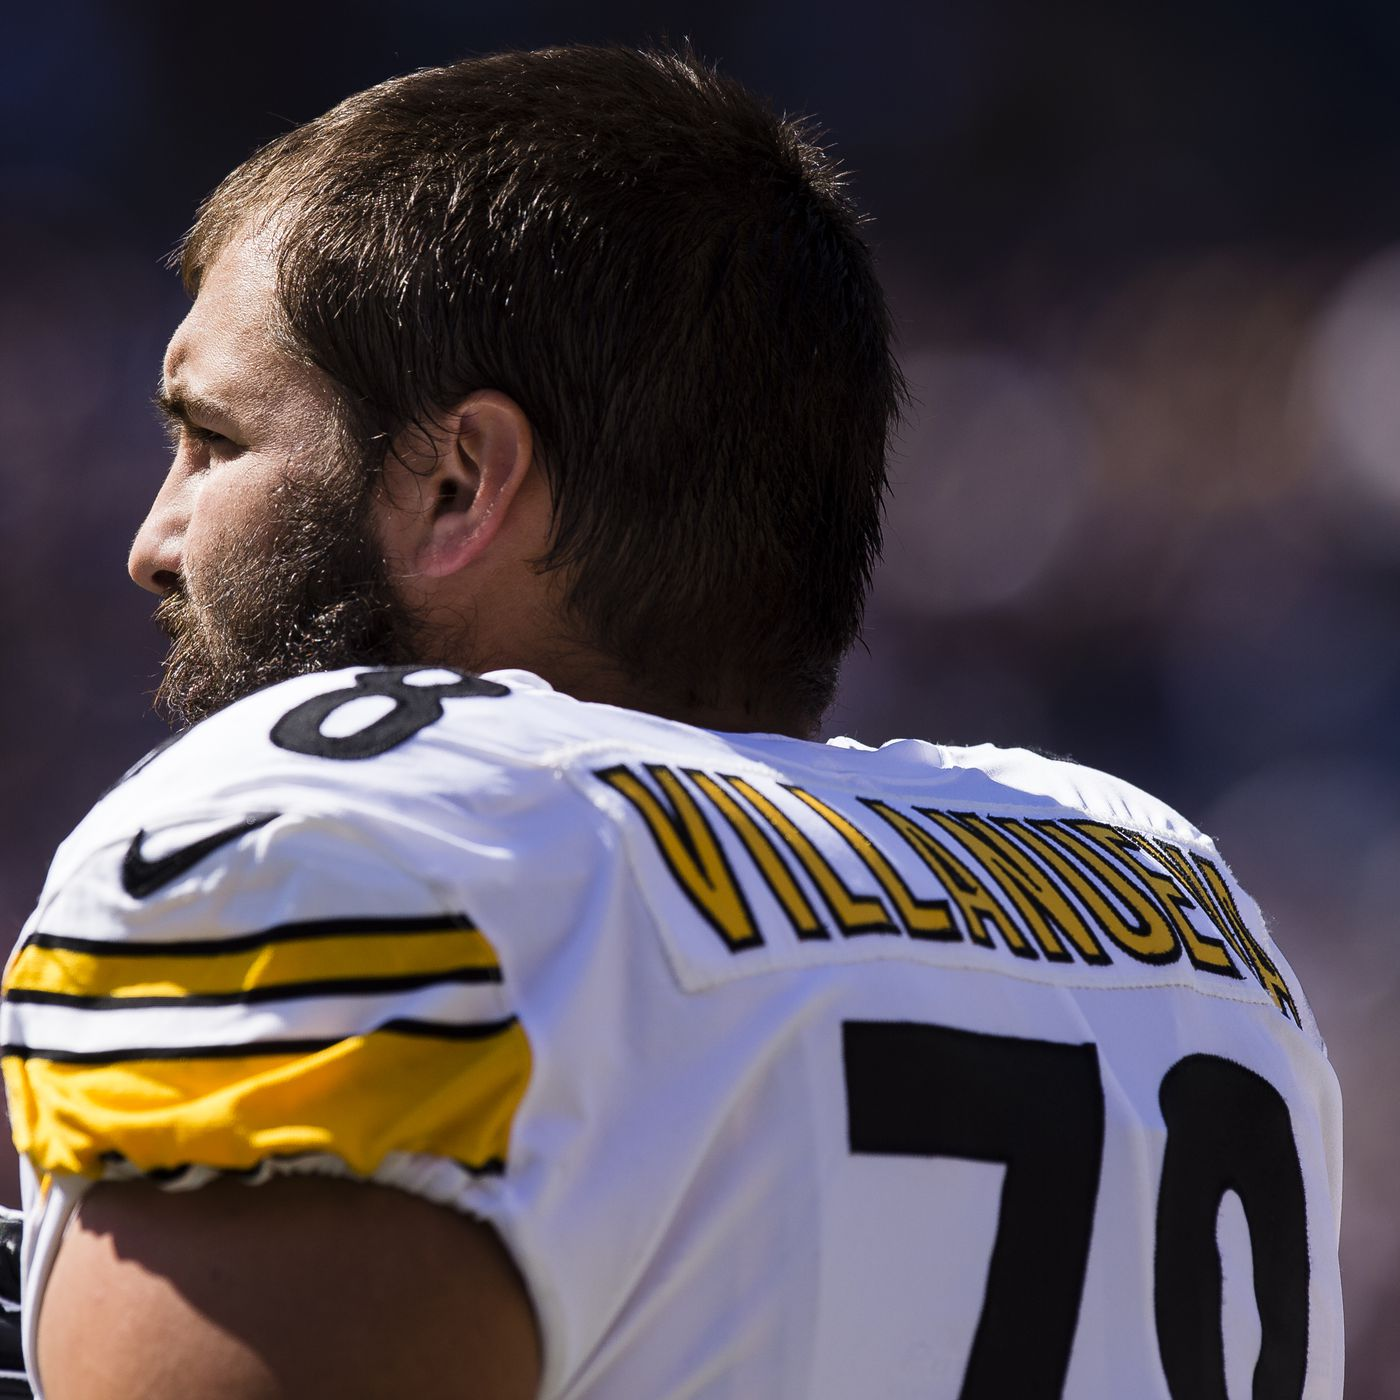 9ba4baf23 Alejandro Villanueva says he does not want to be used to push any national  anthem agenda